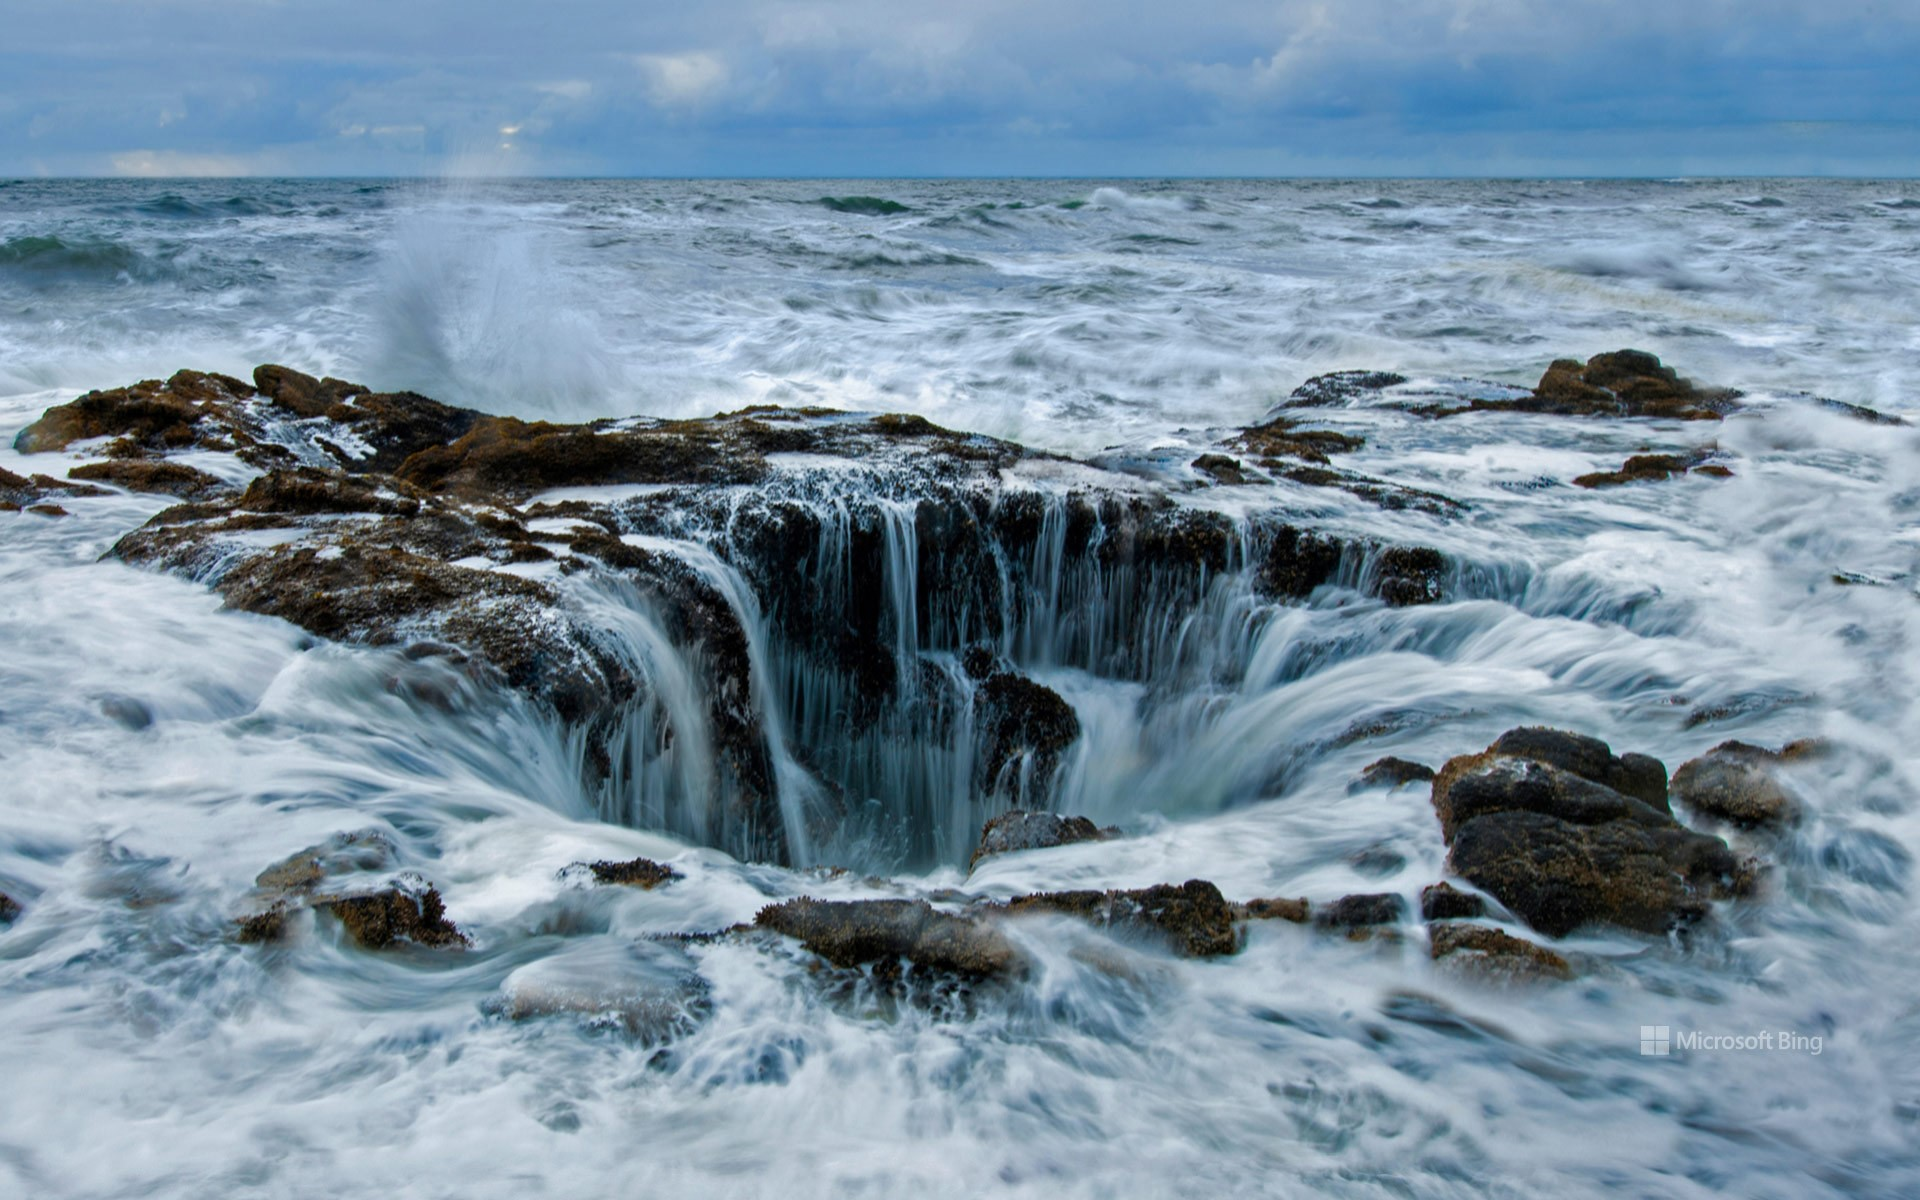 Thor's Well at Cape Perpetua on the Oregon coast, USA